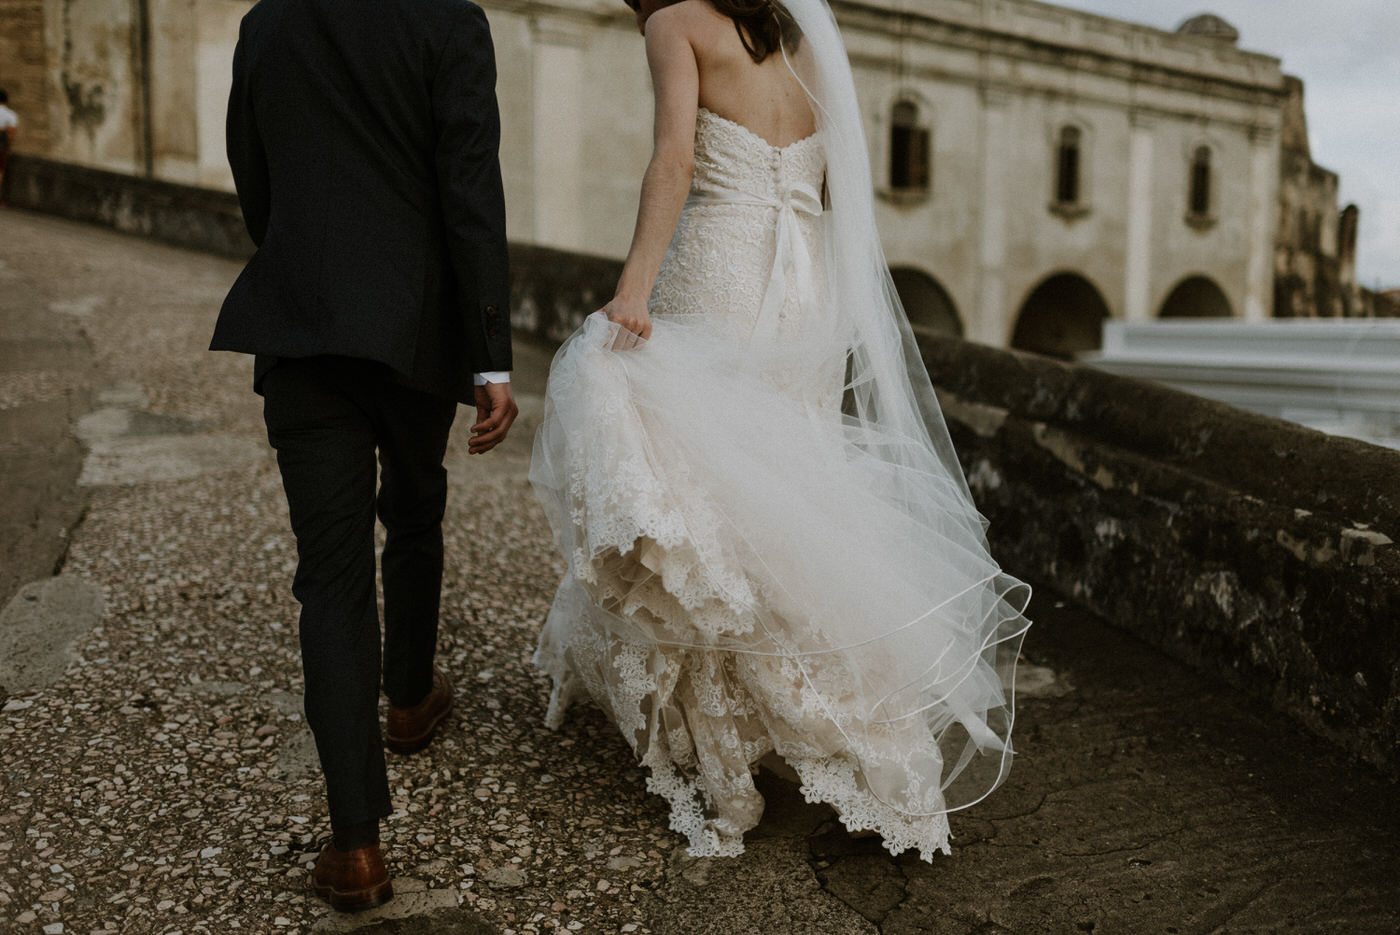 Bride and groom walking a cobblestone path